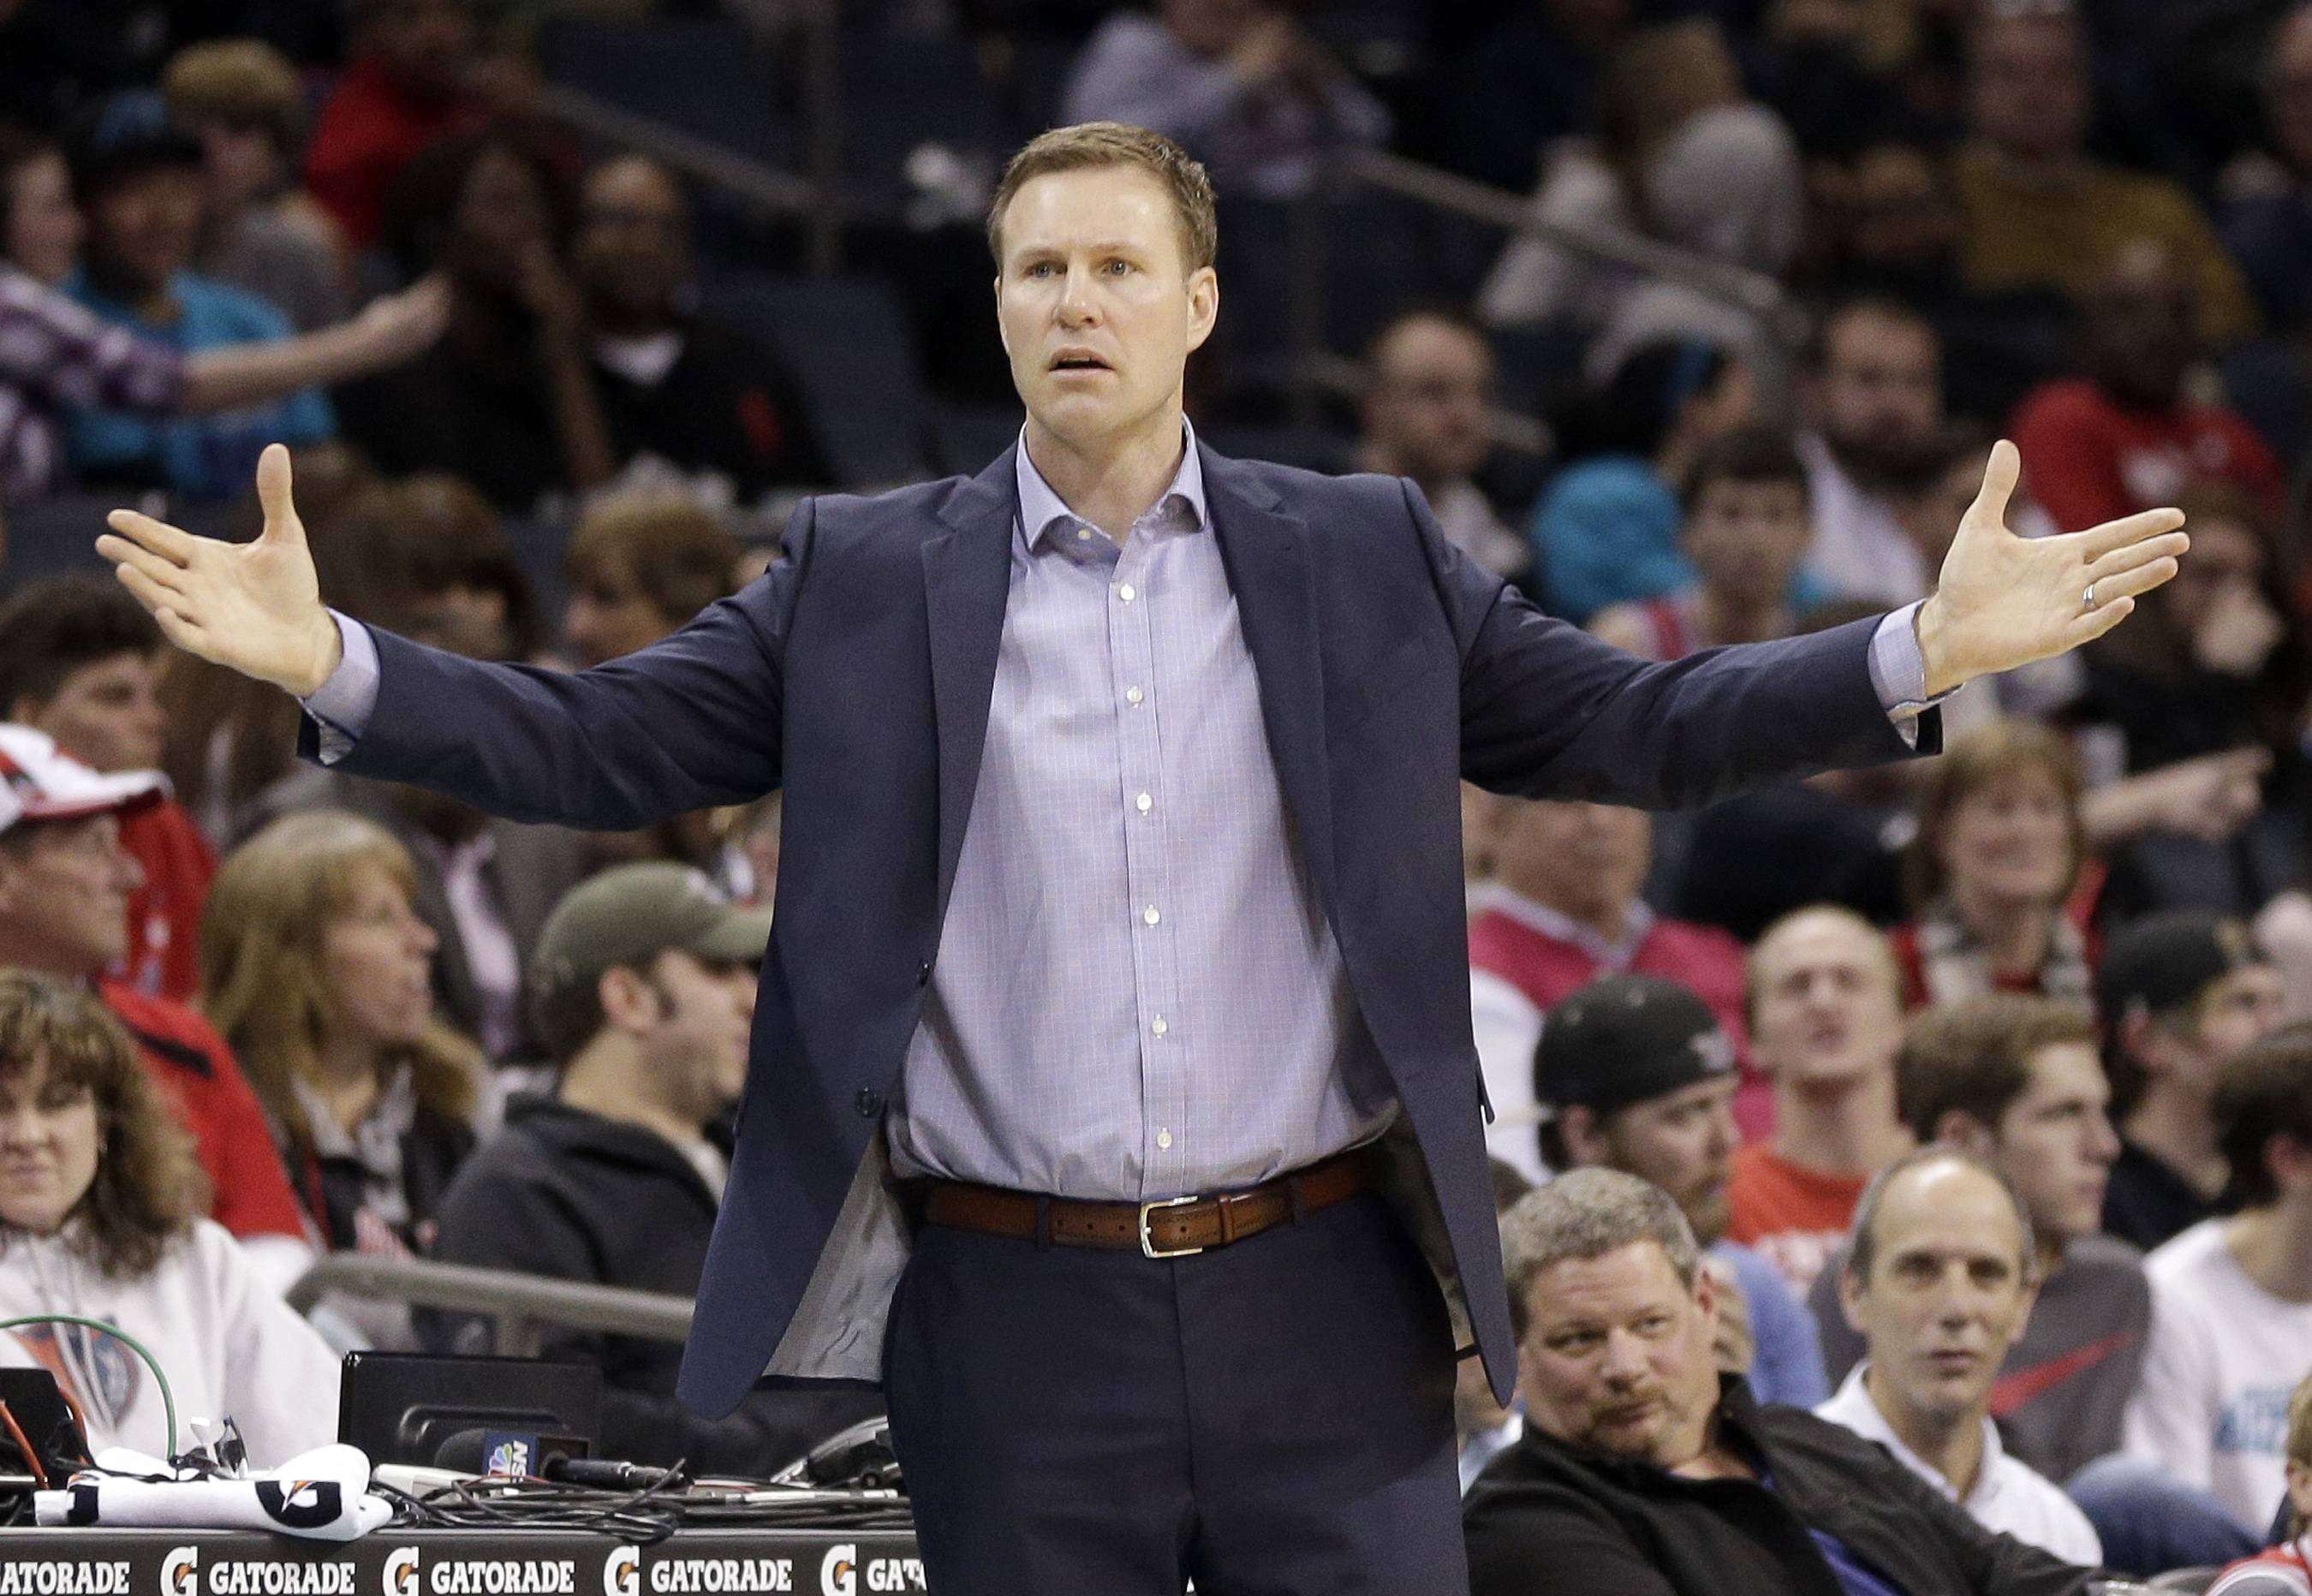 Chicago Bulls head coach Fred Hoiberg wasn't happy with his team's 108-91 loss to the Charlotte Hornets on Monday. The Bulls have fallen to seventh place in the NBA Eastern Conference with one game to play before the all-star break.